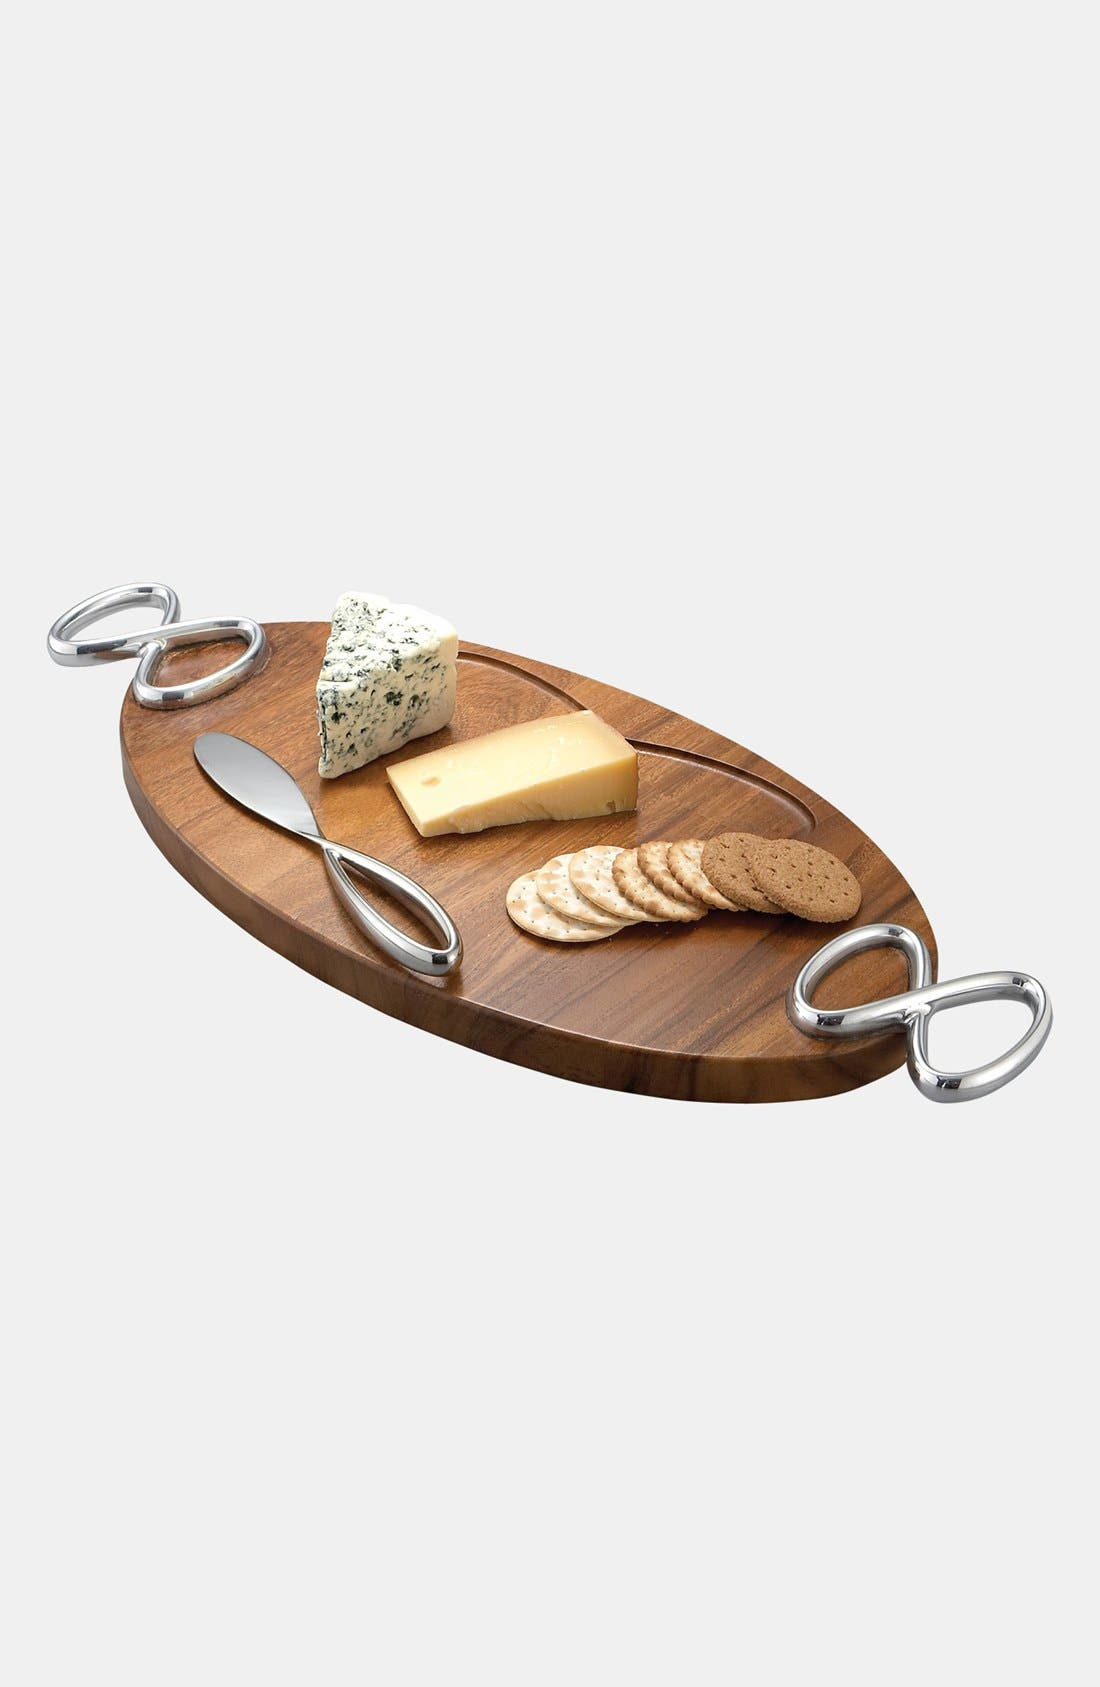 Infinity Cheese Board & Knife,                         Main,                         color,